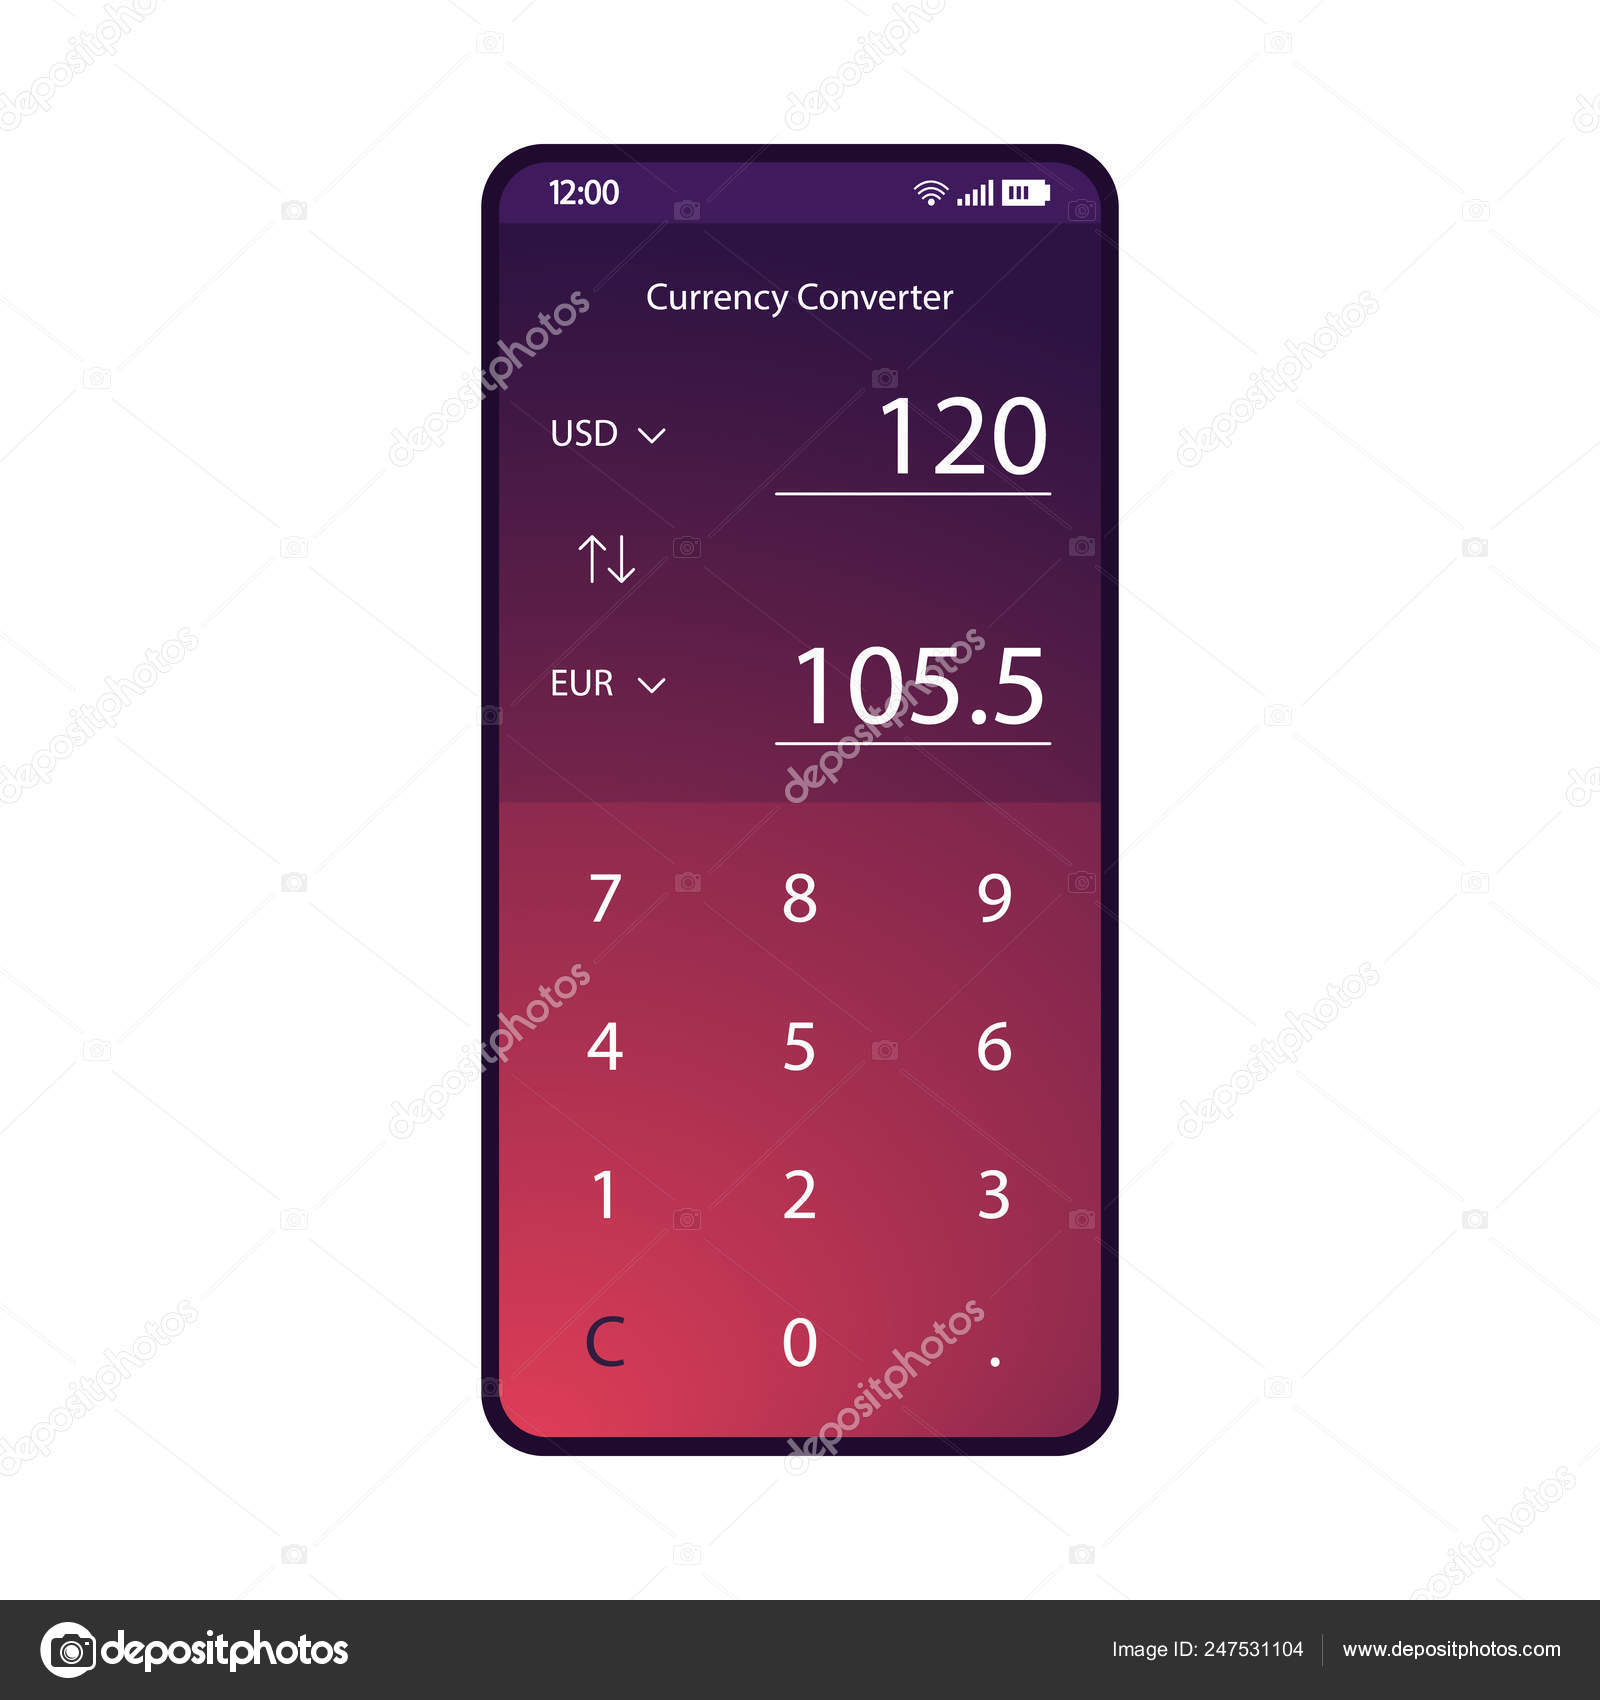 Currency Converter App Smartphone Interface Vector Template Mobile